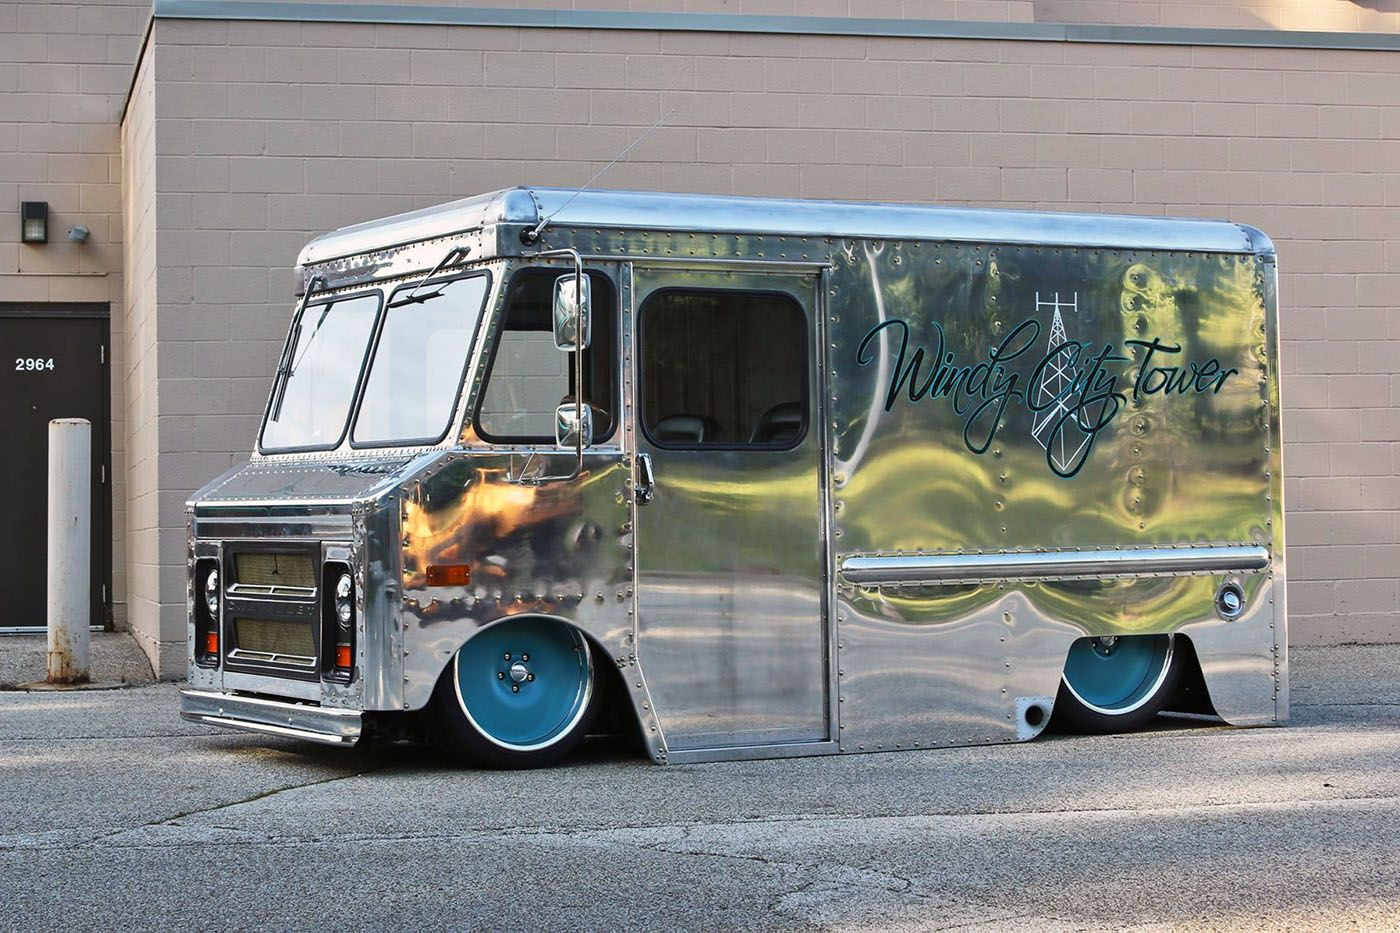 1970 Chevy P10 Van With A Lsx Step Van Bagged Trucks